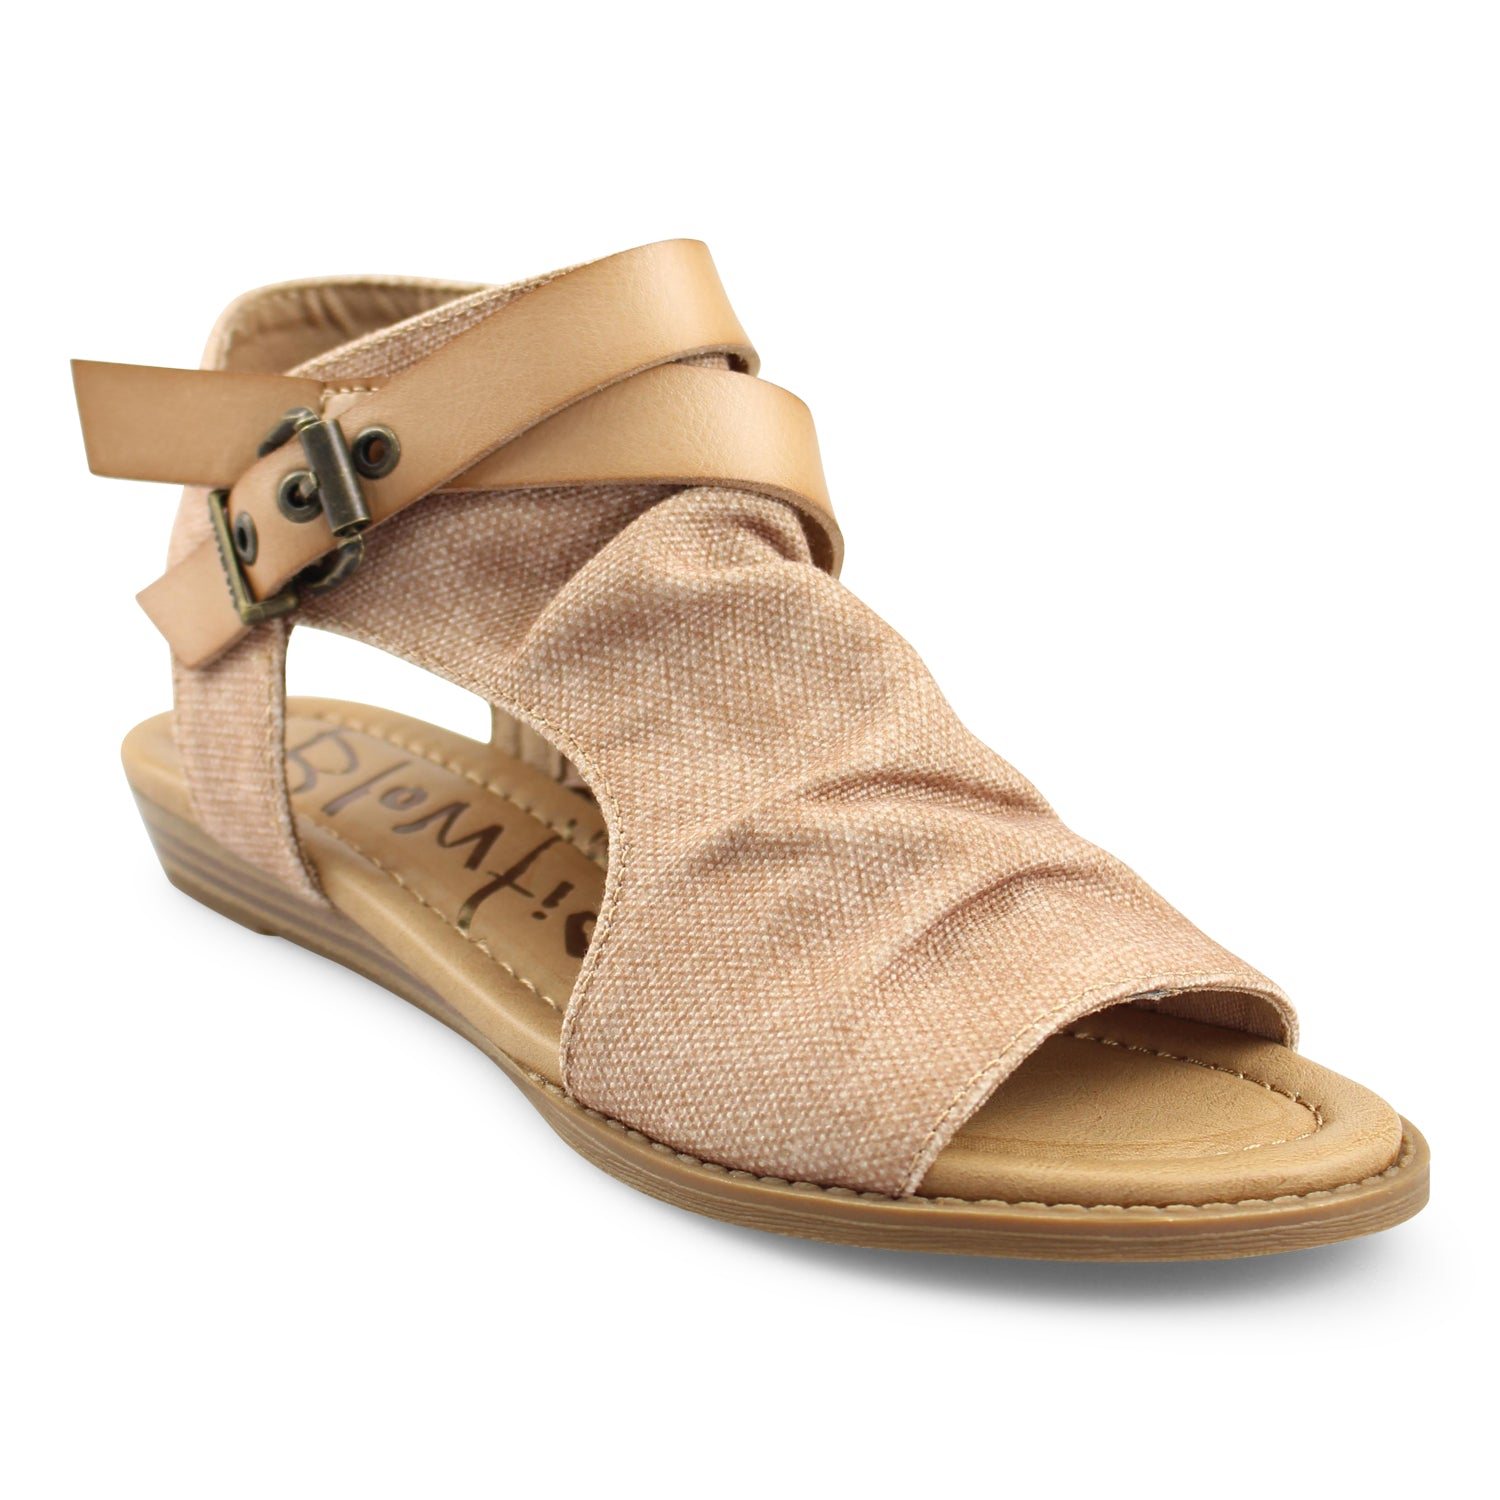 BF-5486G Balla 4 Earth Sandal